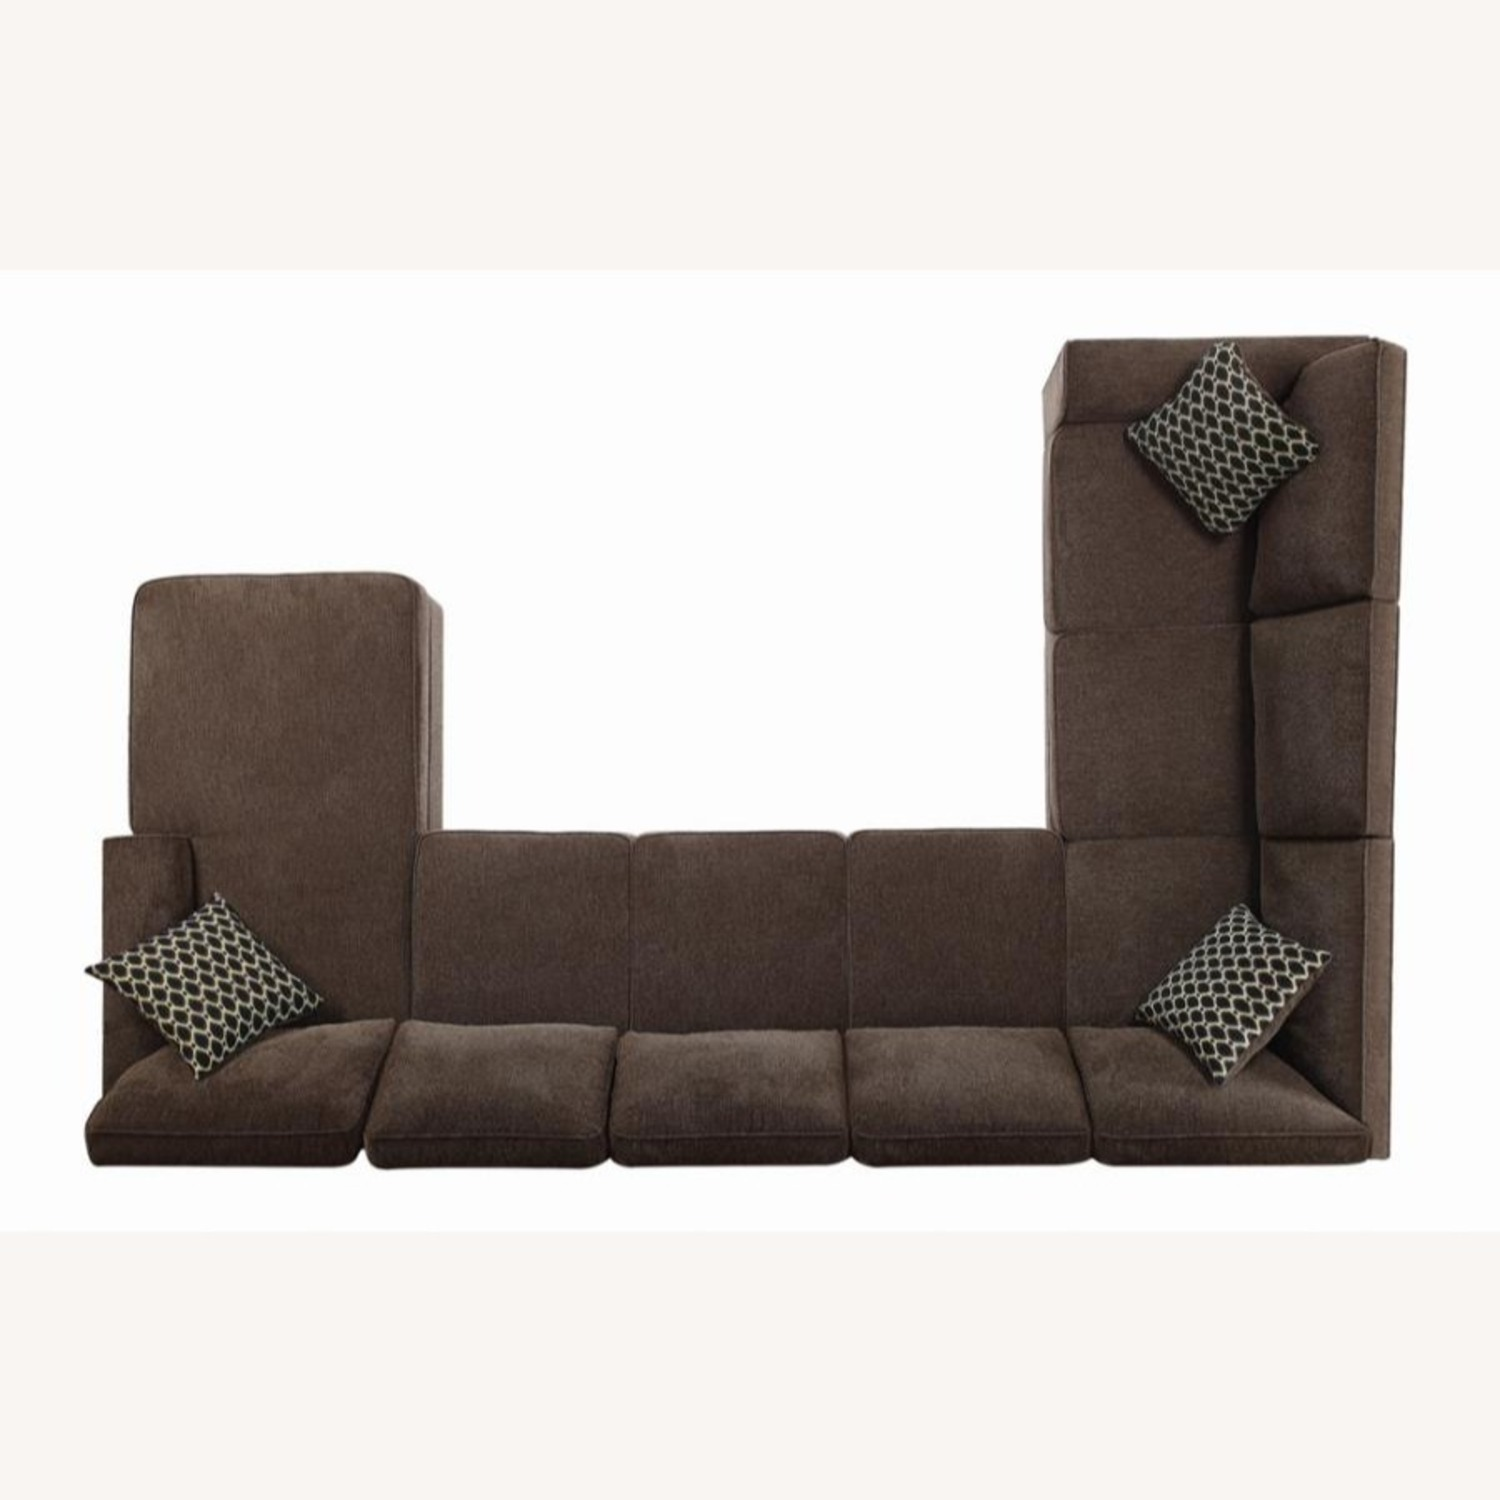 Sectional In Multi-Tonal Brown Chenille Upholstery - image-7